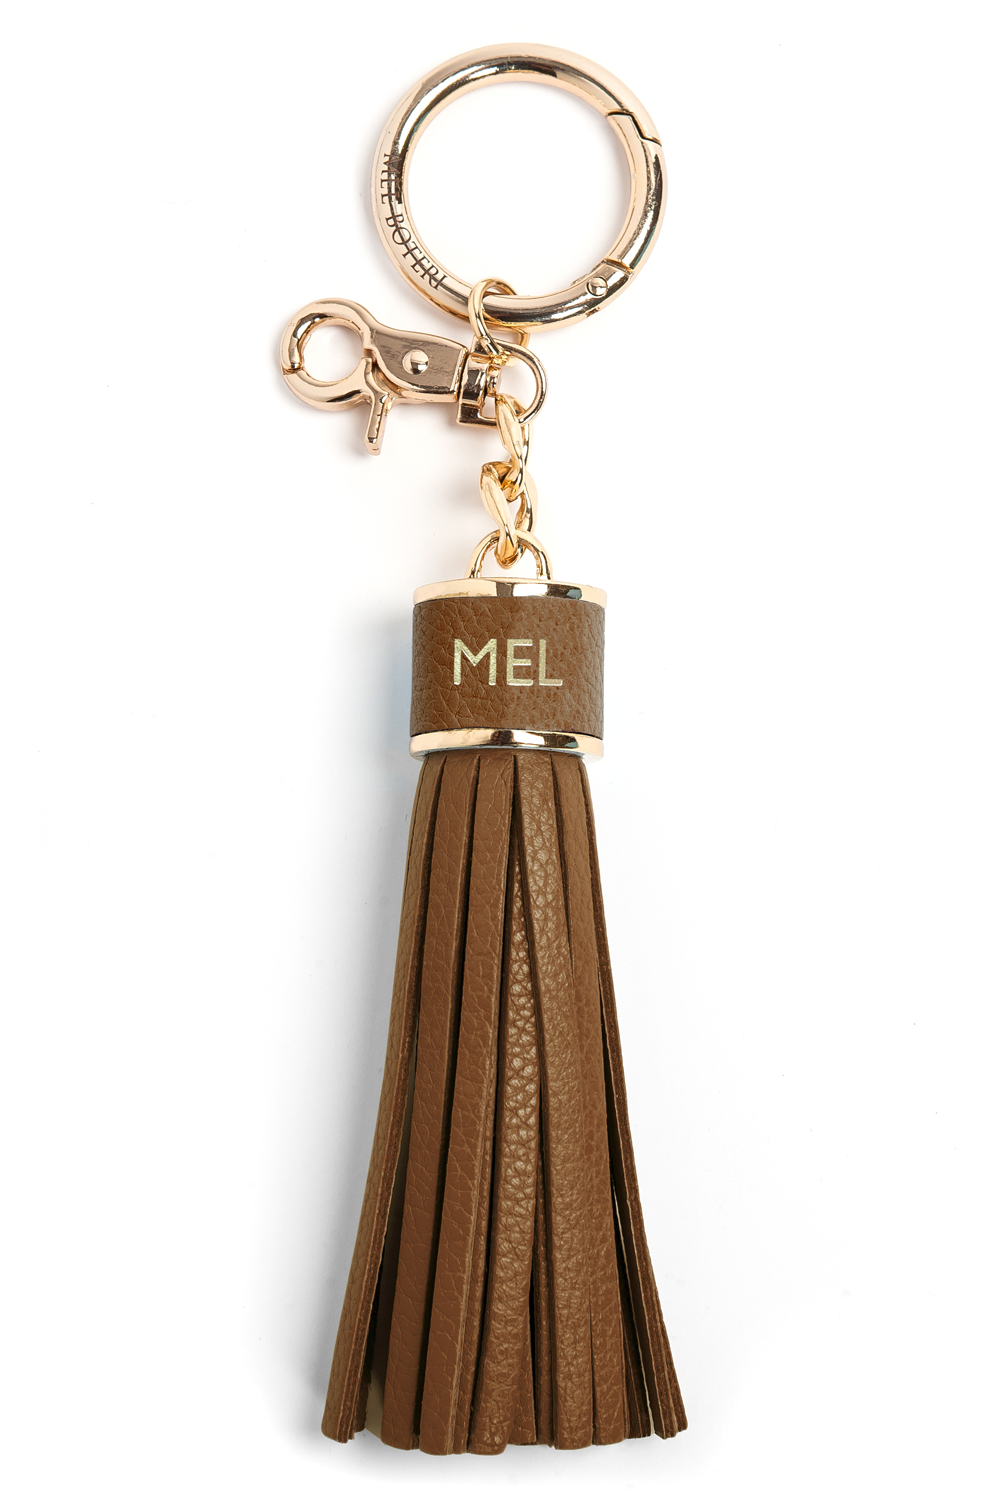 The Mel Boteri Pebbled-Leather Tassel Charm | Oak Leather With Gold Hardware | Mel Boteri Gift Ideas